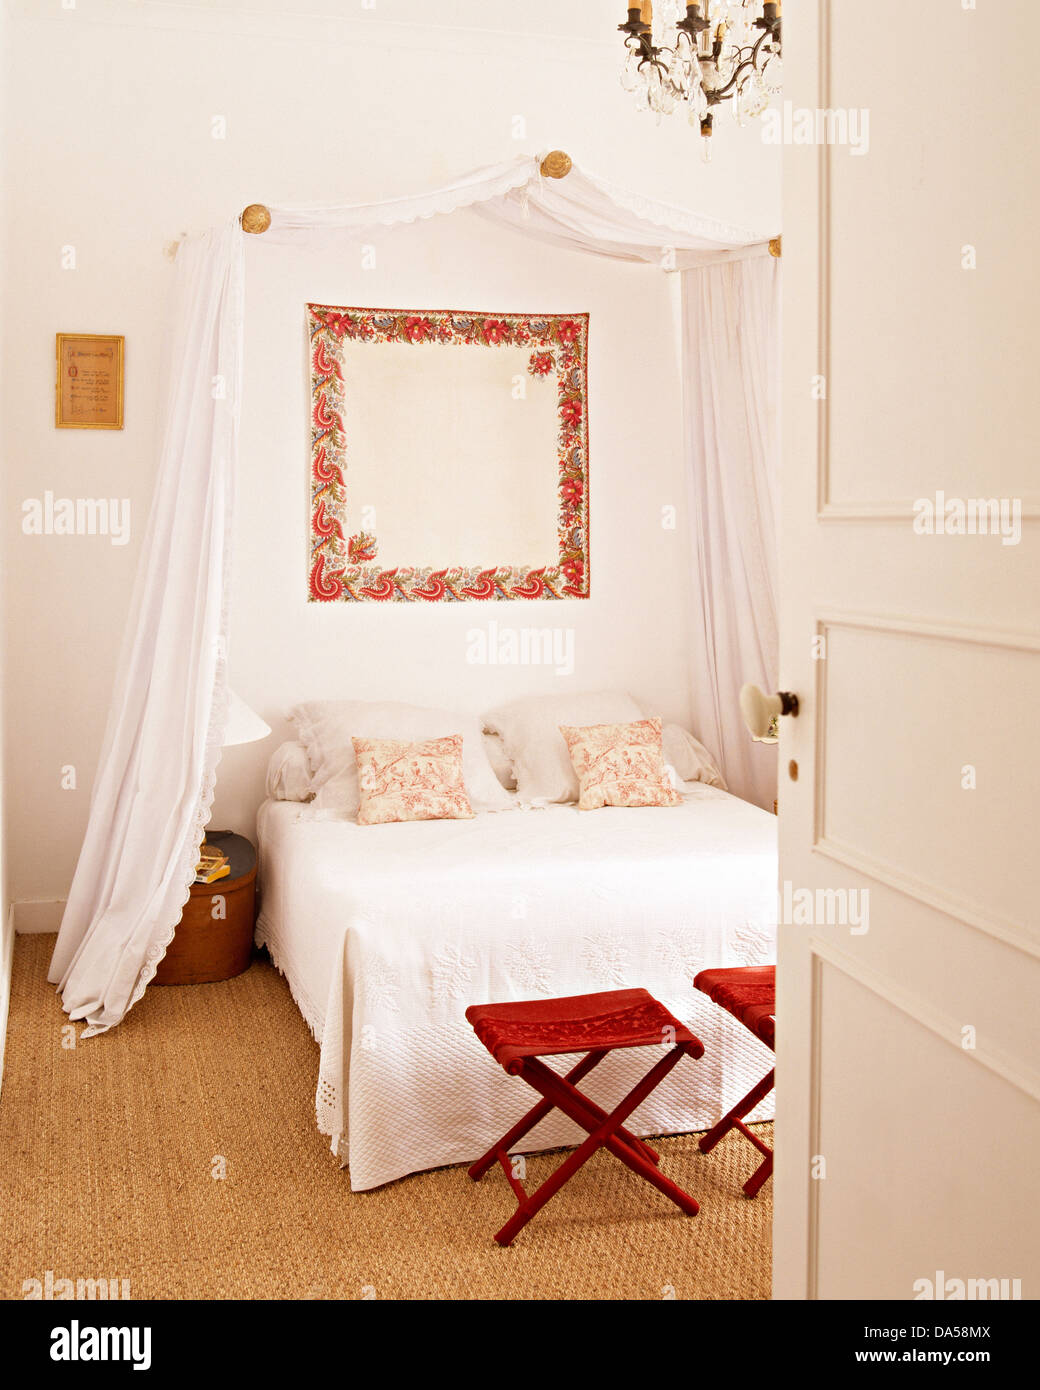 door open to bedroom with white drapes on canopy above bed with